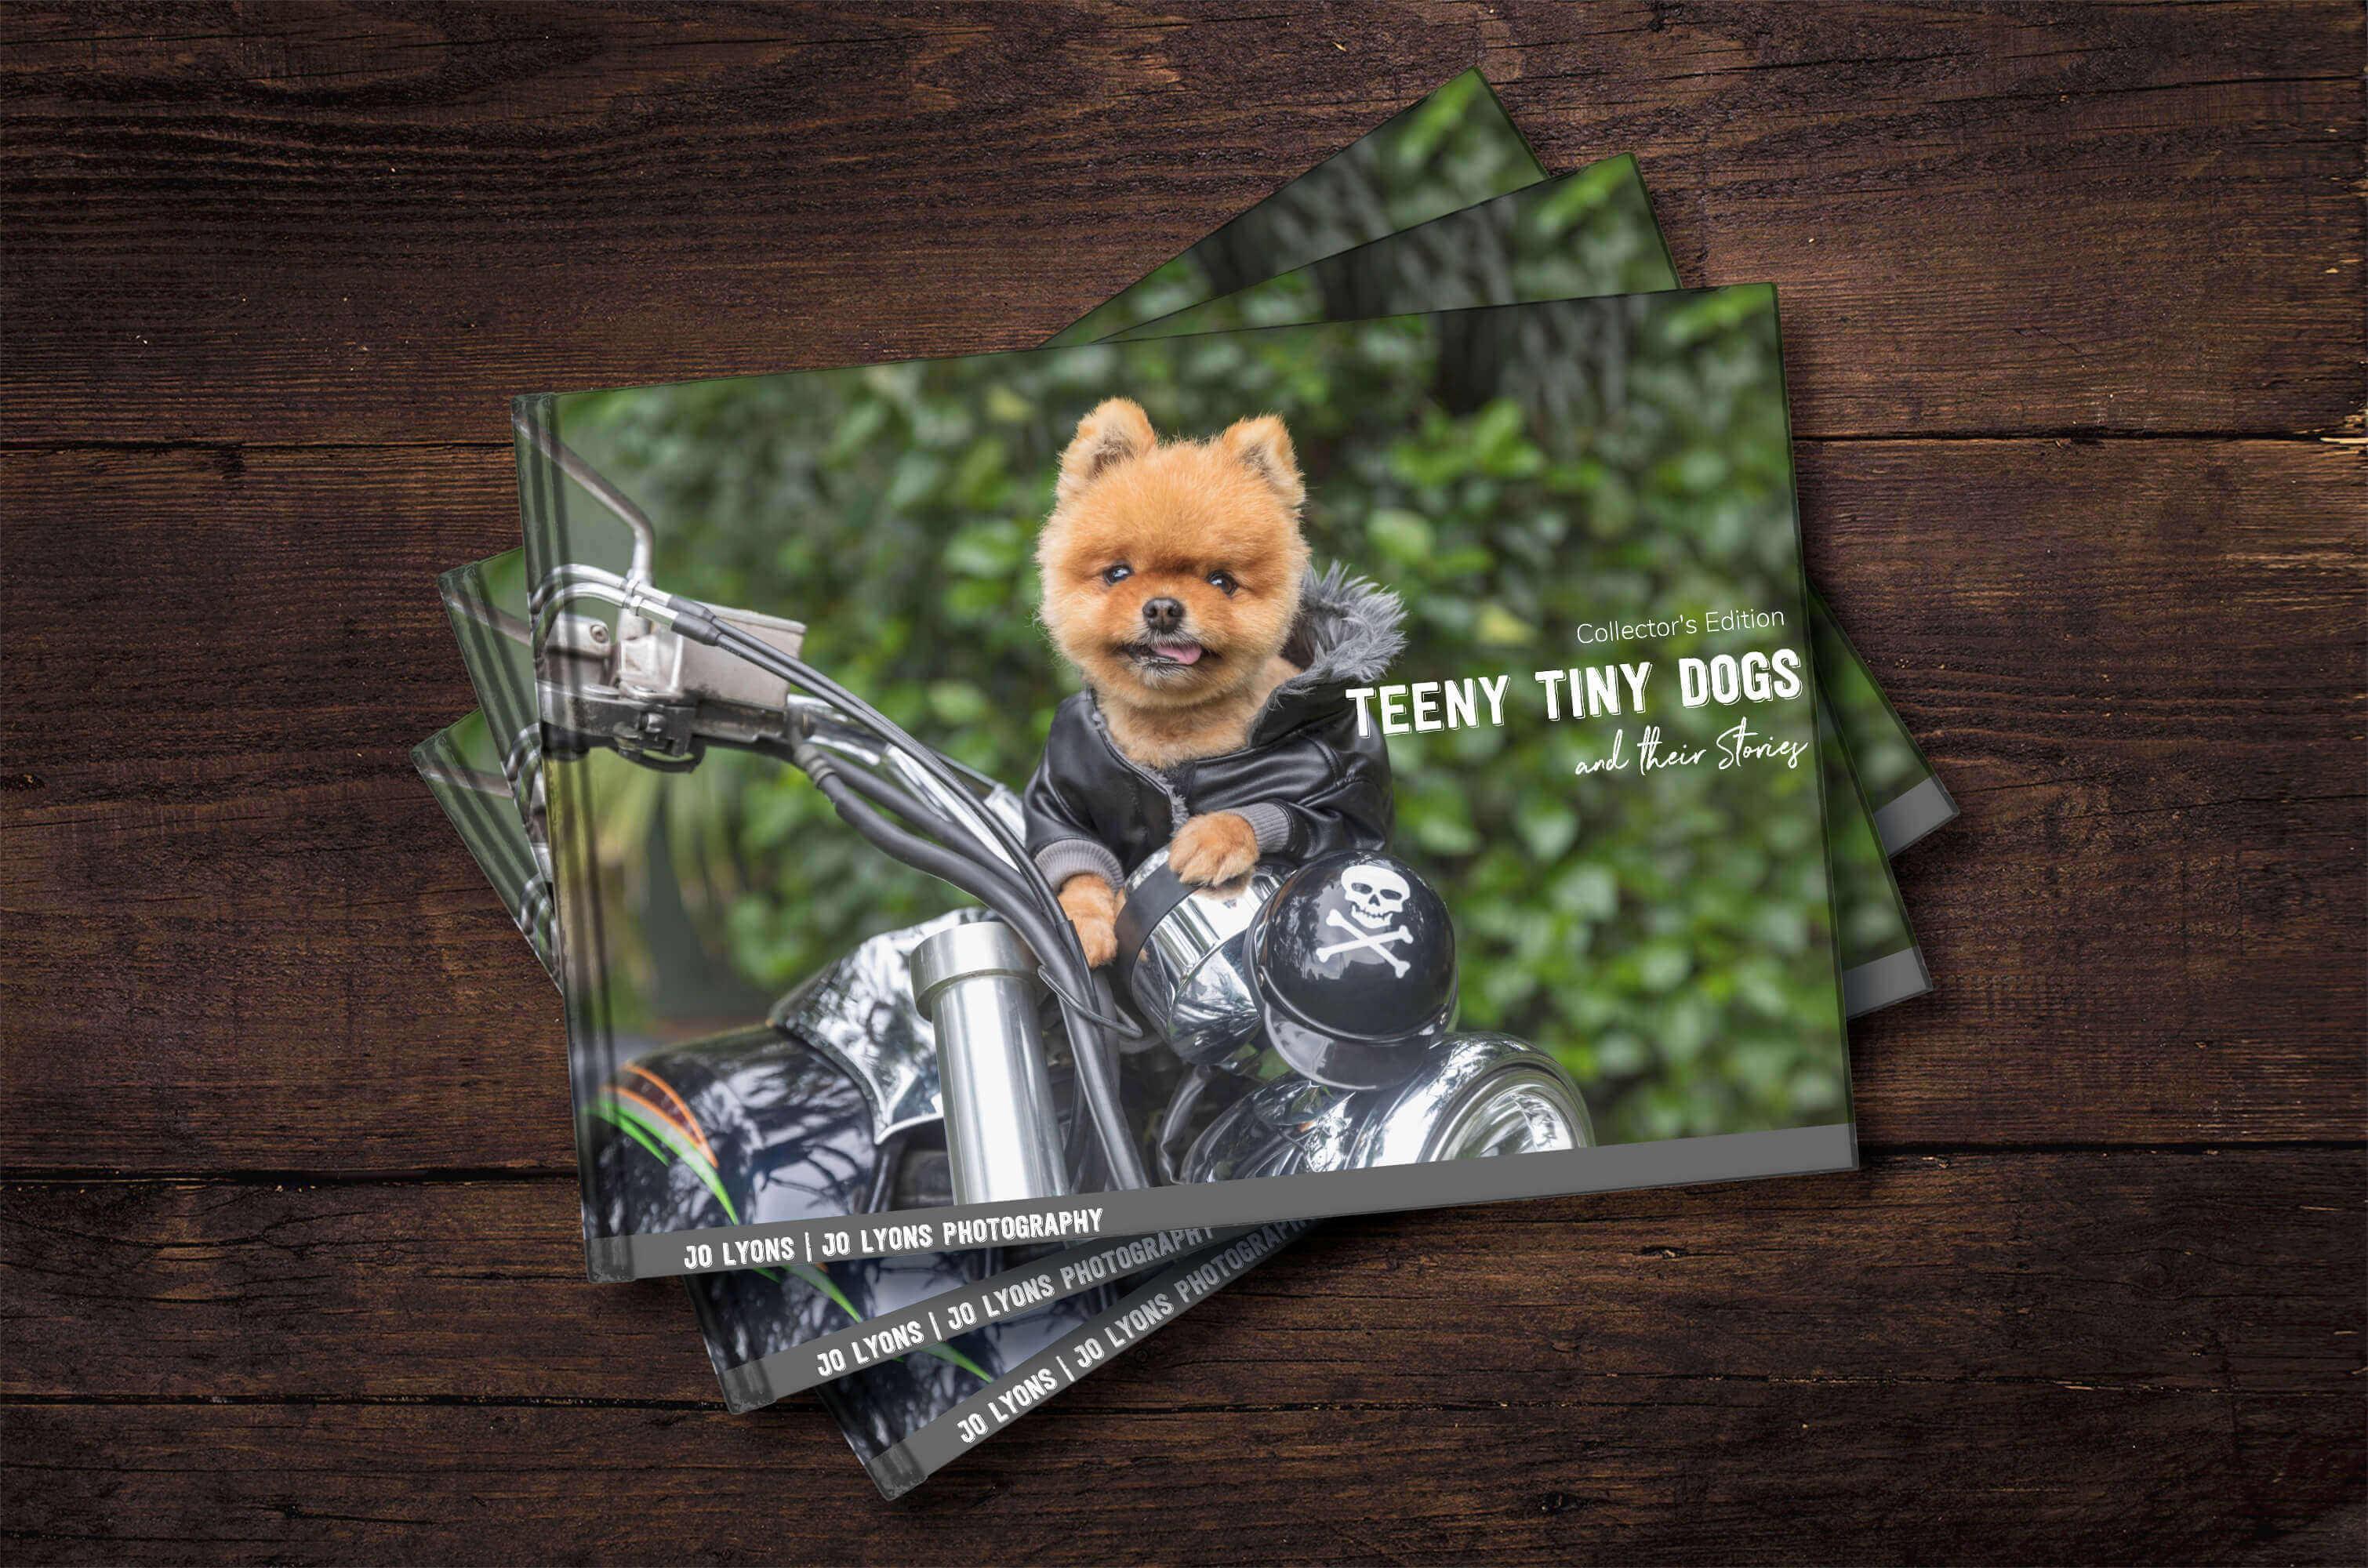 Teeny Tiny Dogs Fundraising Book